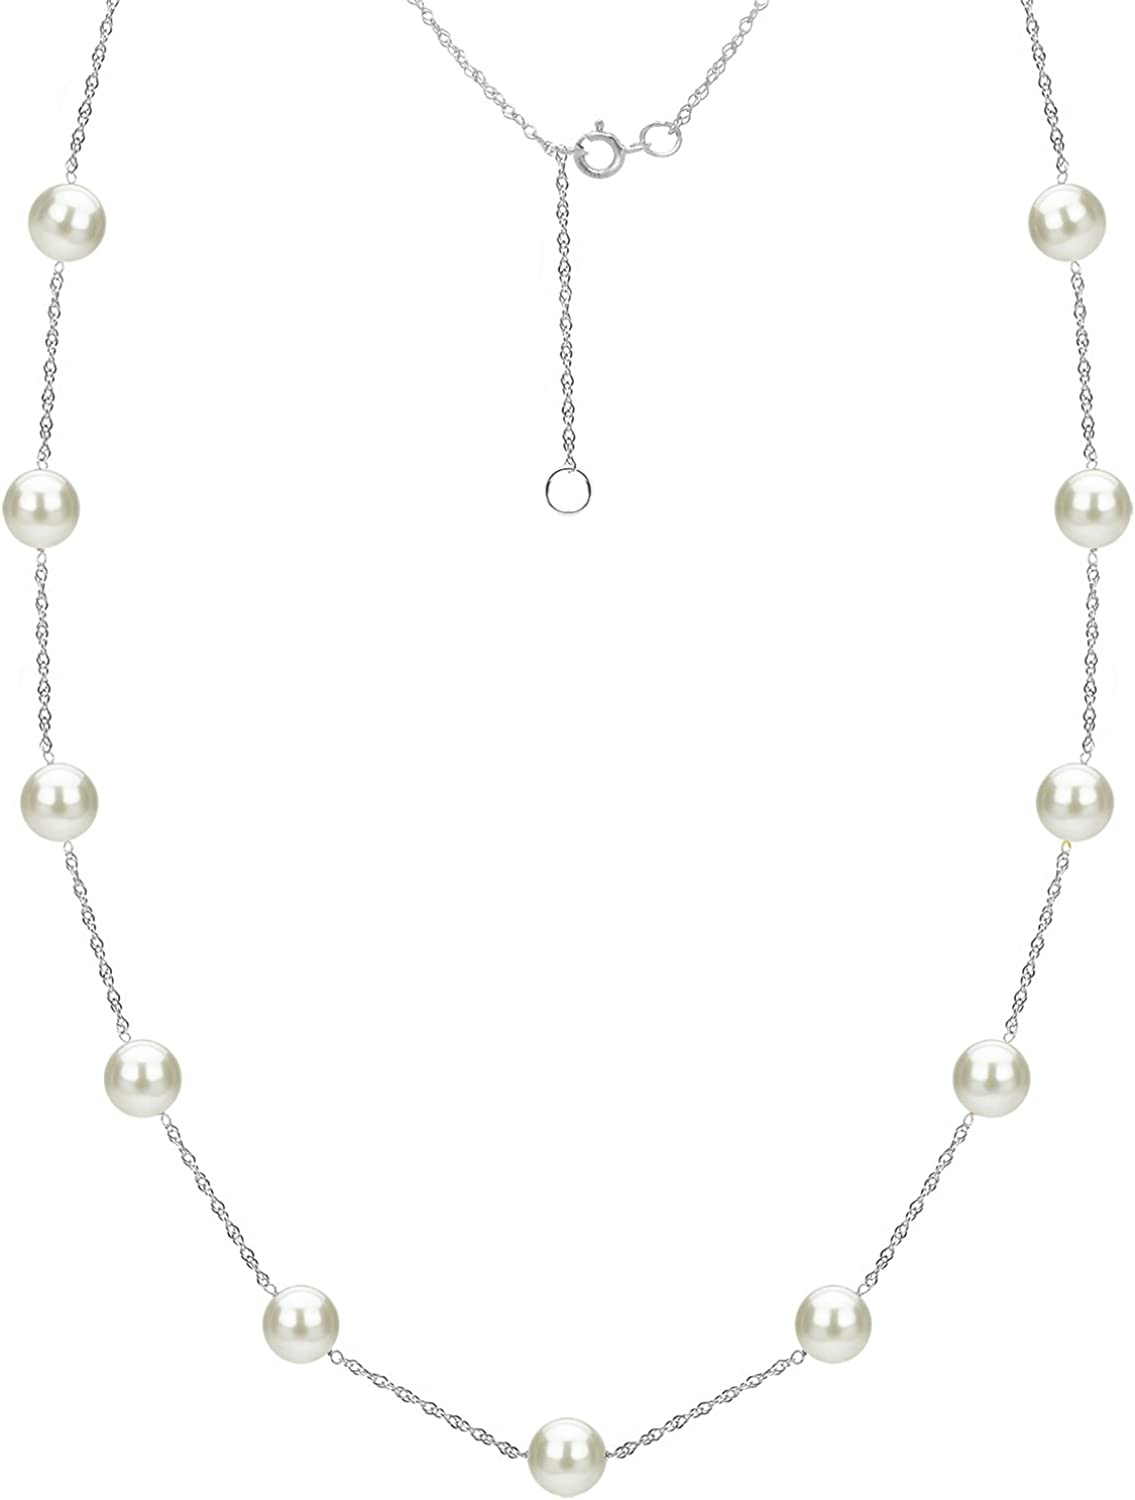 B01KXZ3BSY Tin Cup Station Chain Layered Necklace Cultured Freshwater White Pearl Jewelry for Women 18 inch in (Choice Pearl Sizes and Metal Type) 61EpjyLwfsL